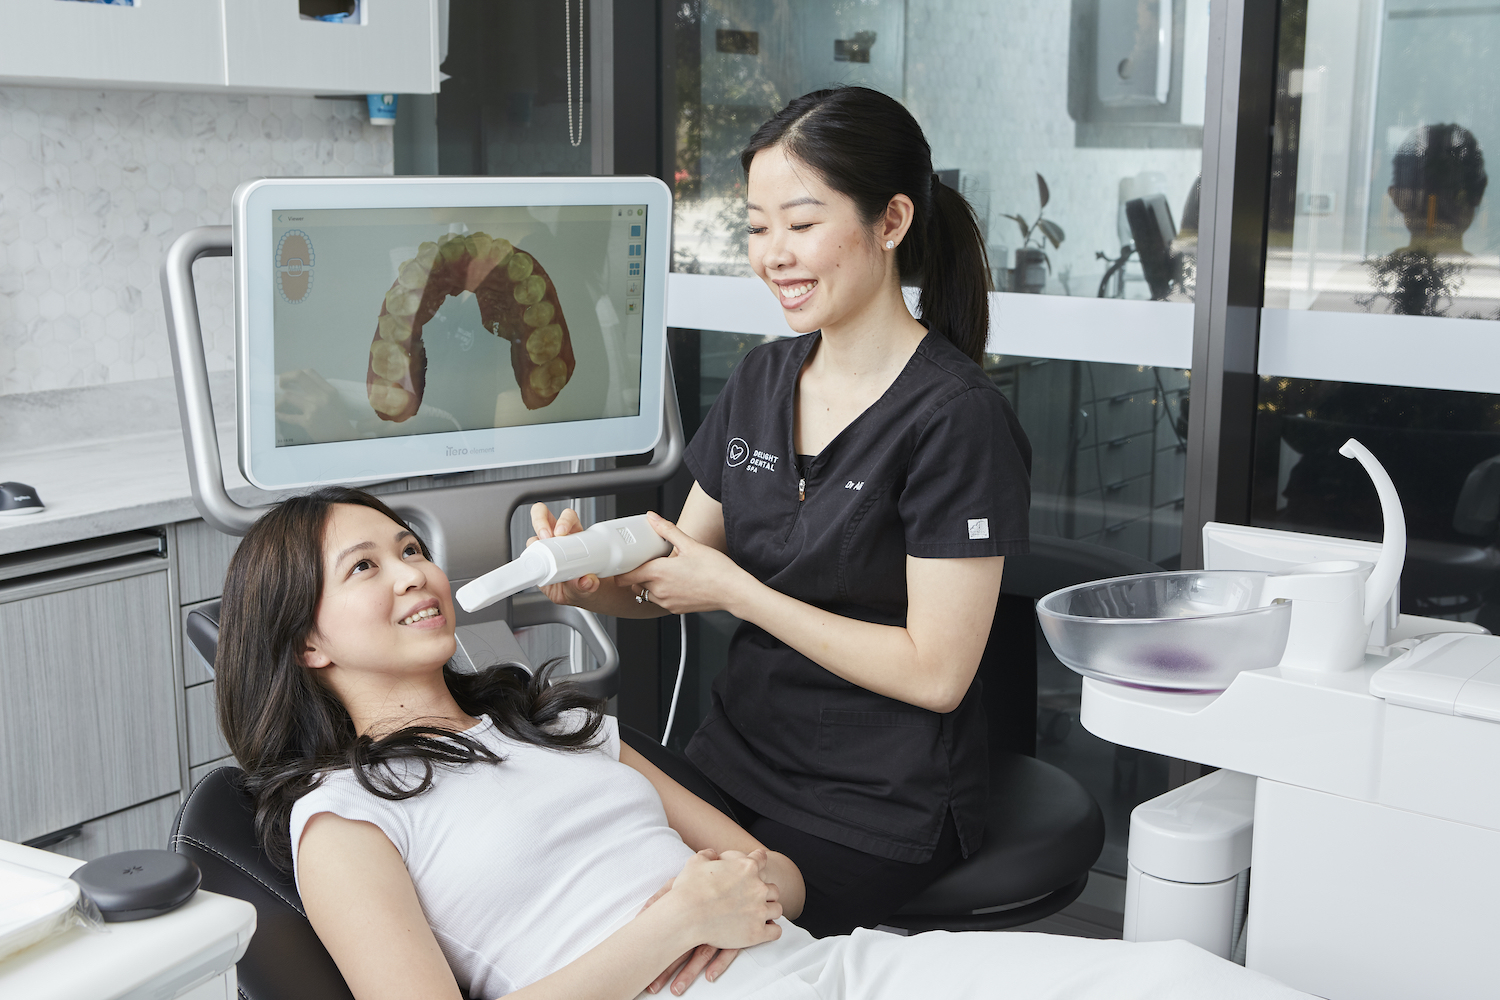 Patient being scanned with invisalign intraoral scanner